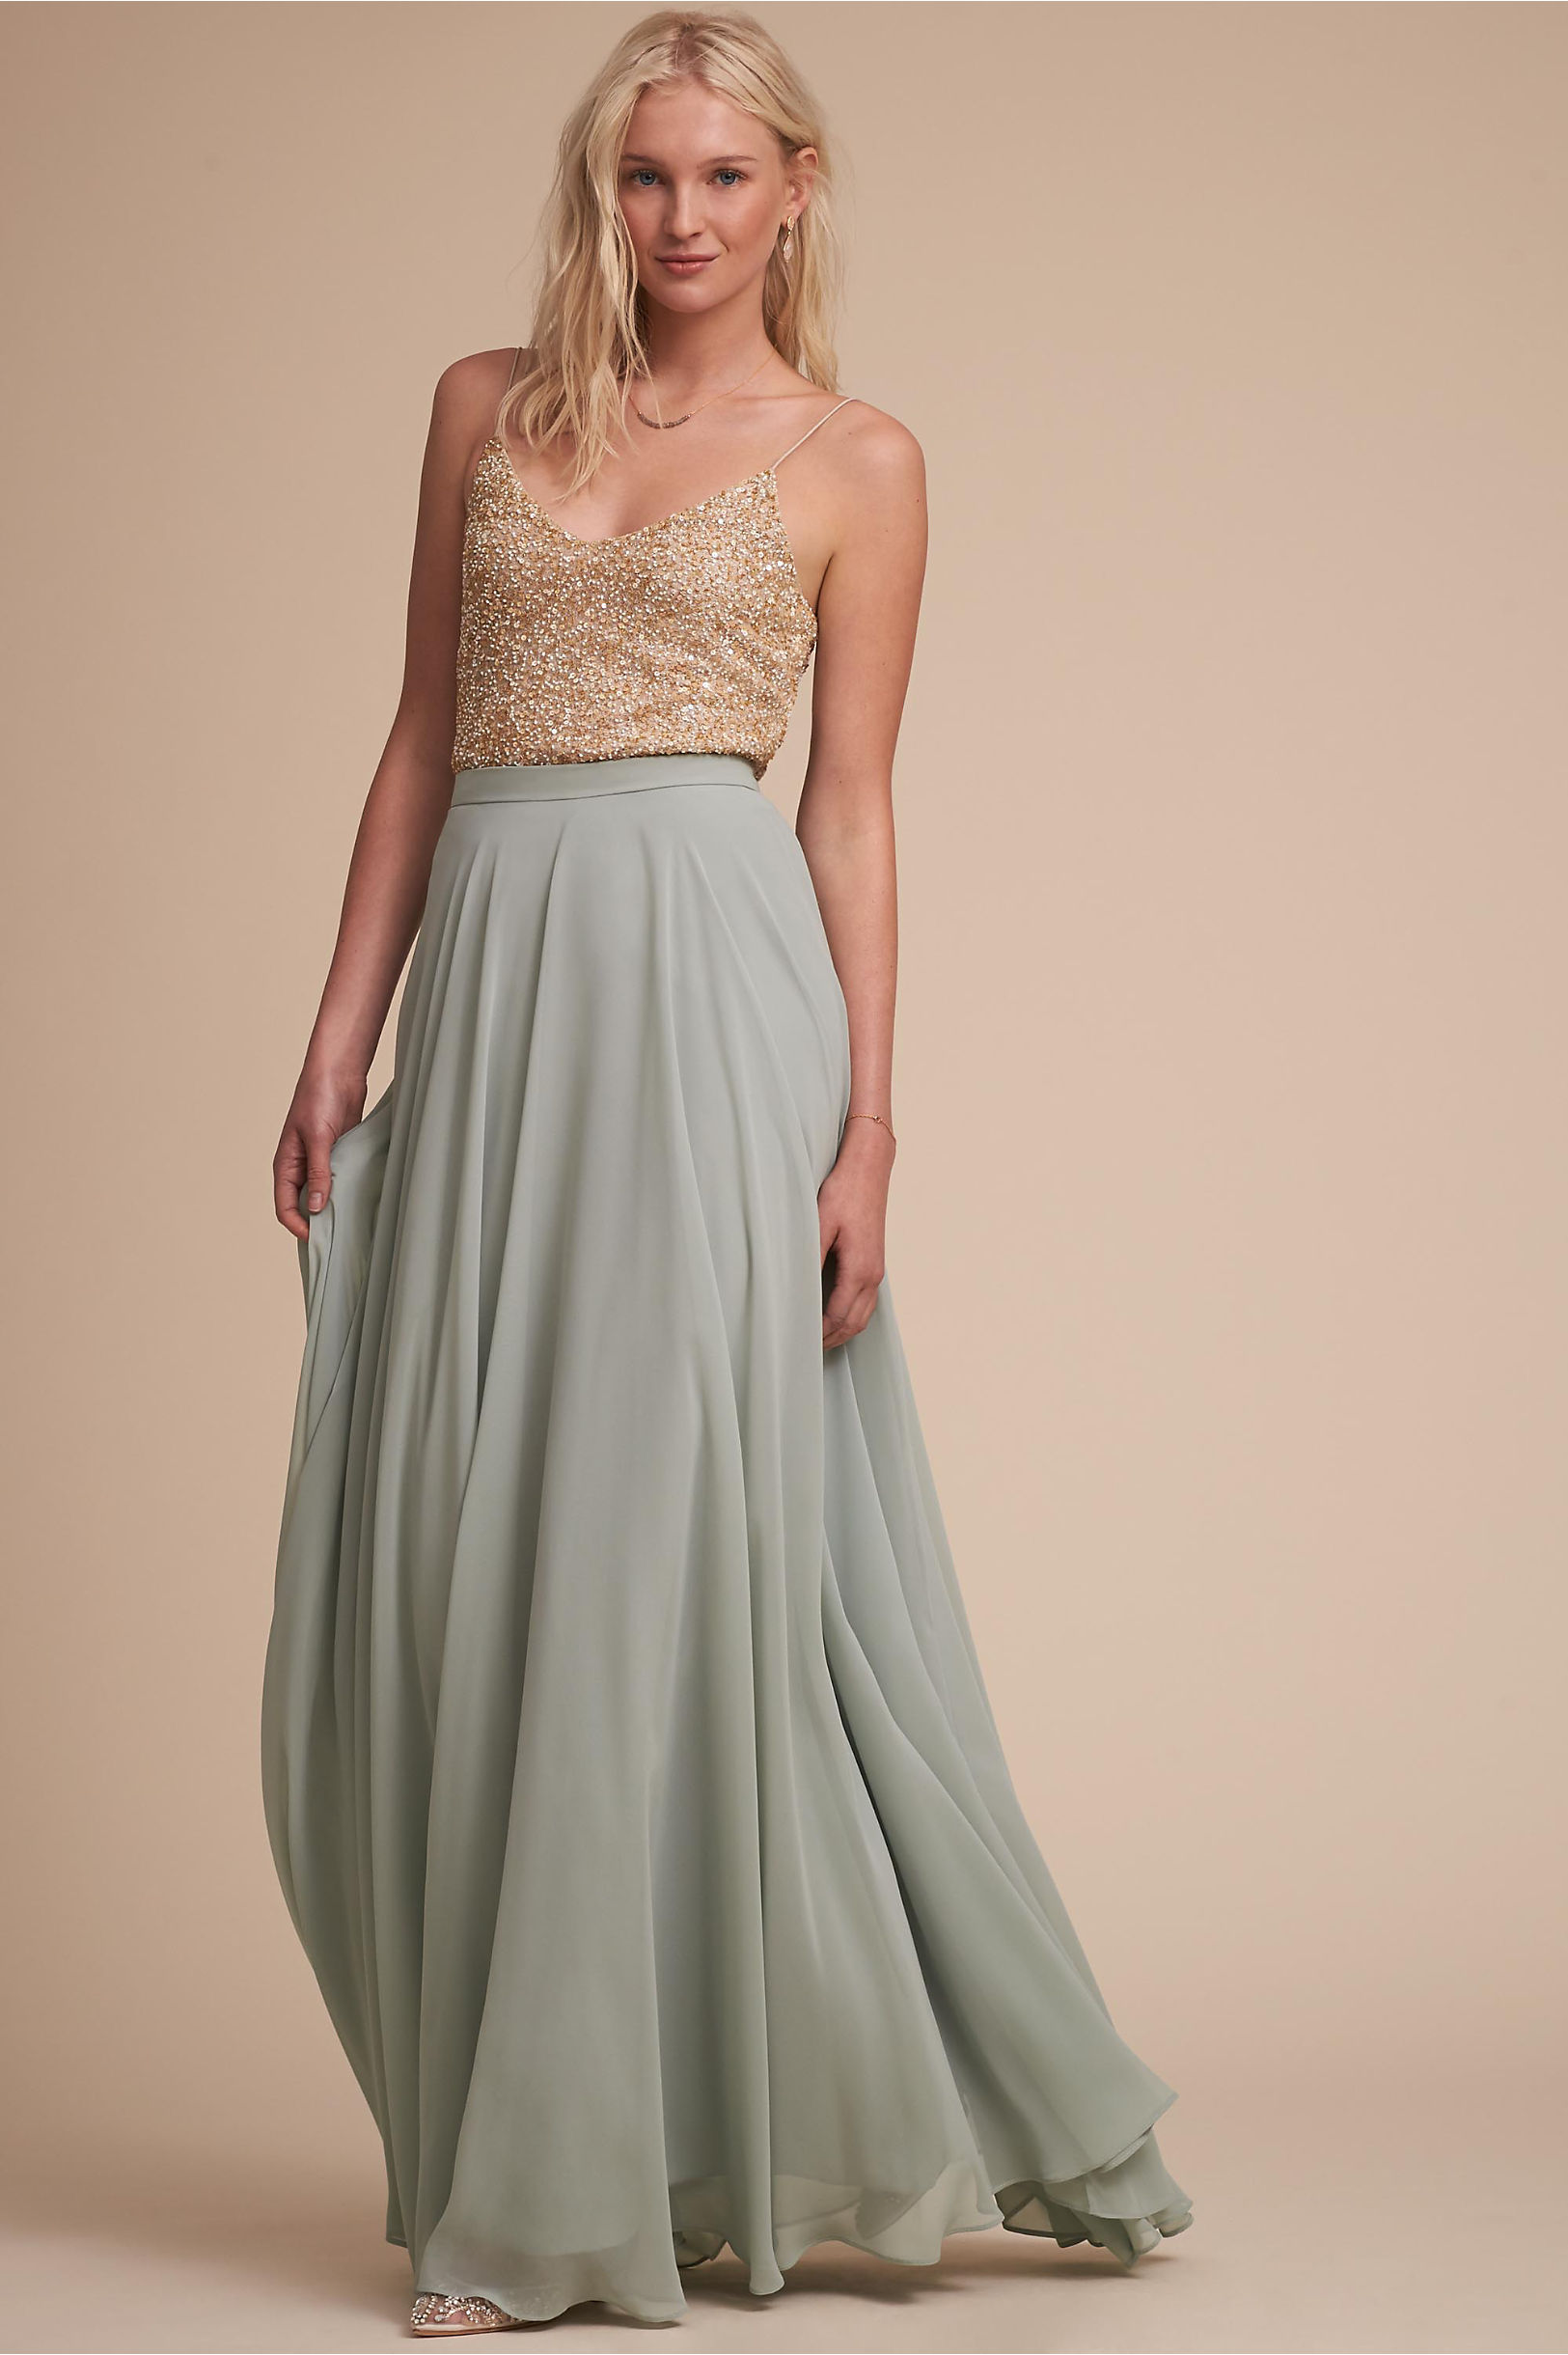 Beaded bridesmaid dresses bhldn allegro top hampton skirt ombrellifo Gallery